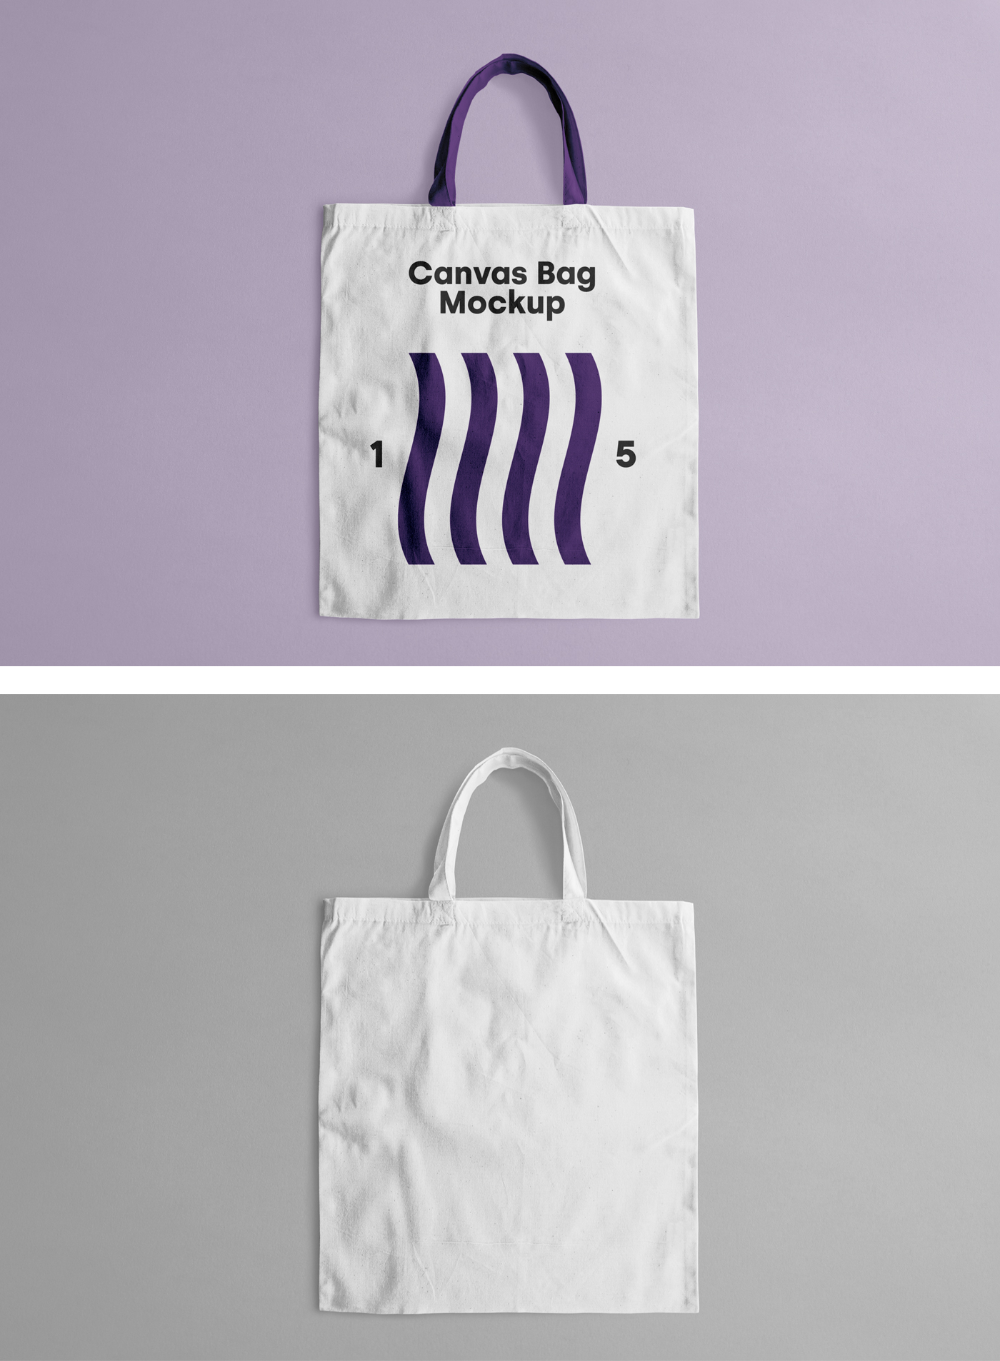 Download Canvas Tote Bag Mockup Mr Mockup Graphic Design Freebies Bag Mockup Canvas Tote Tote Bag